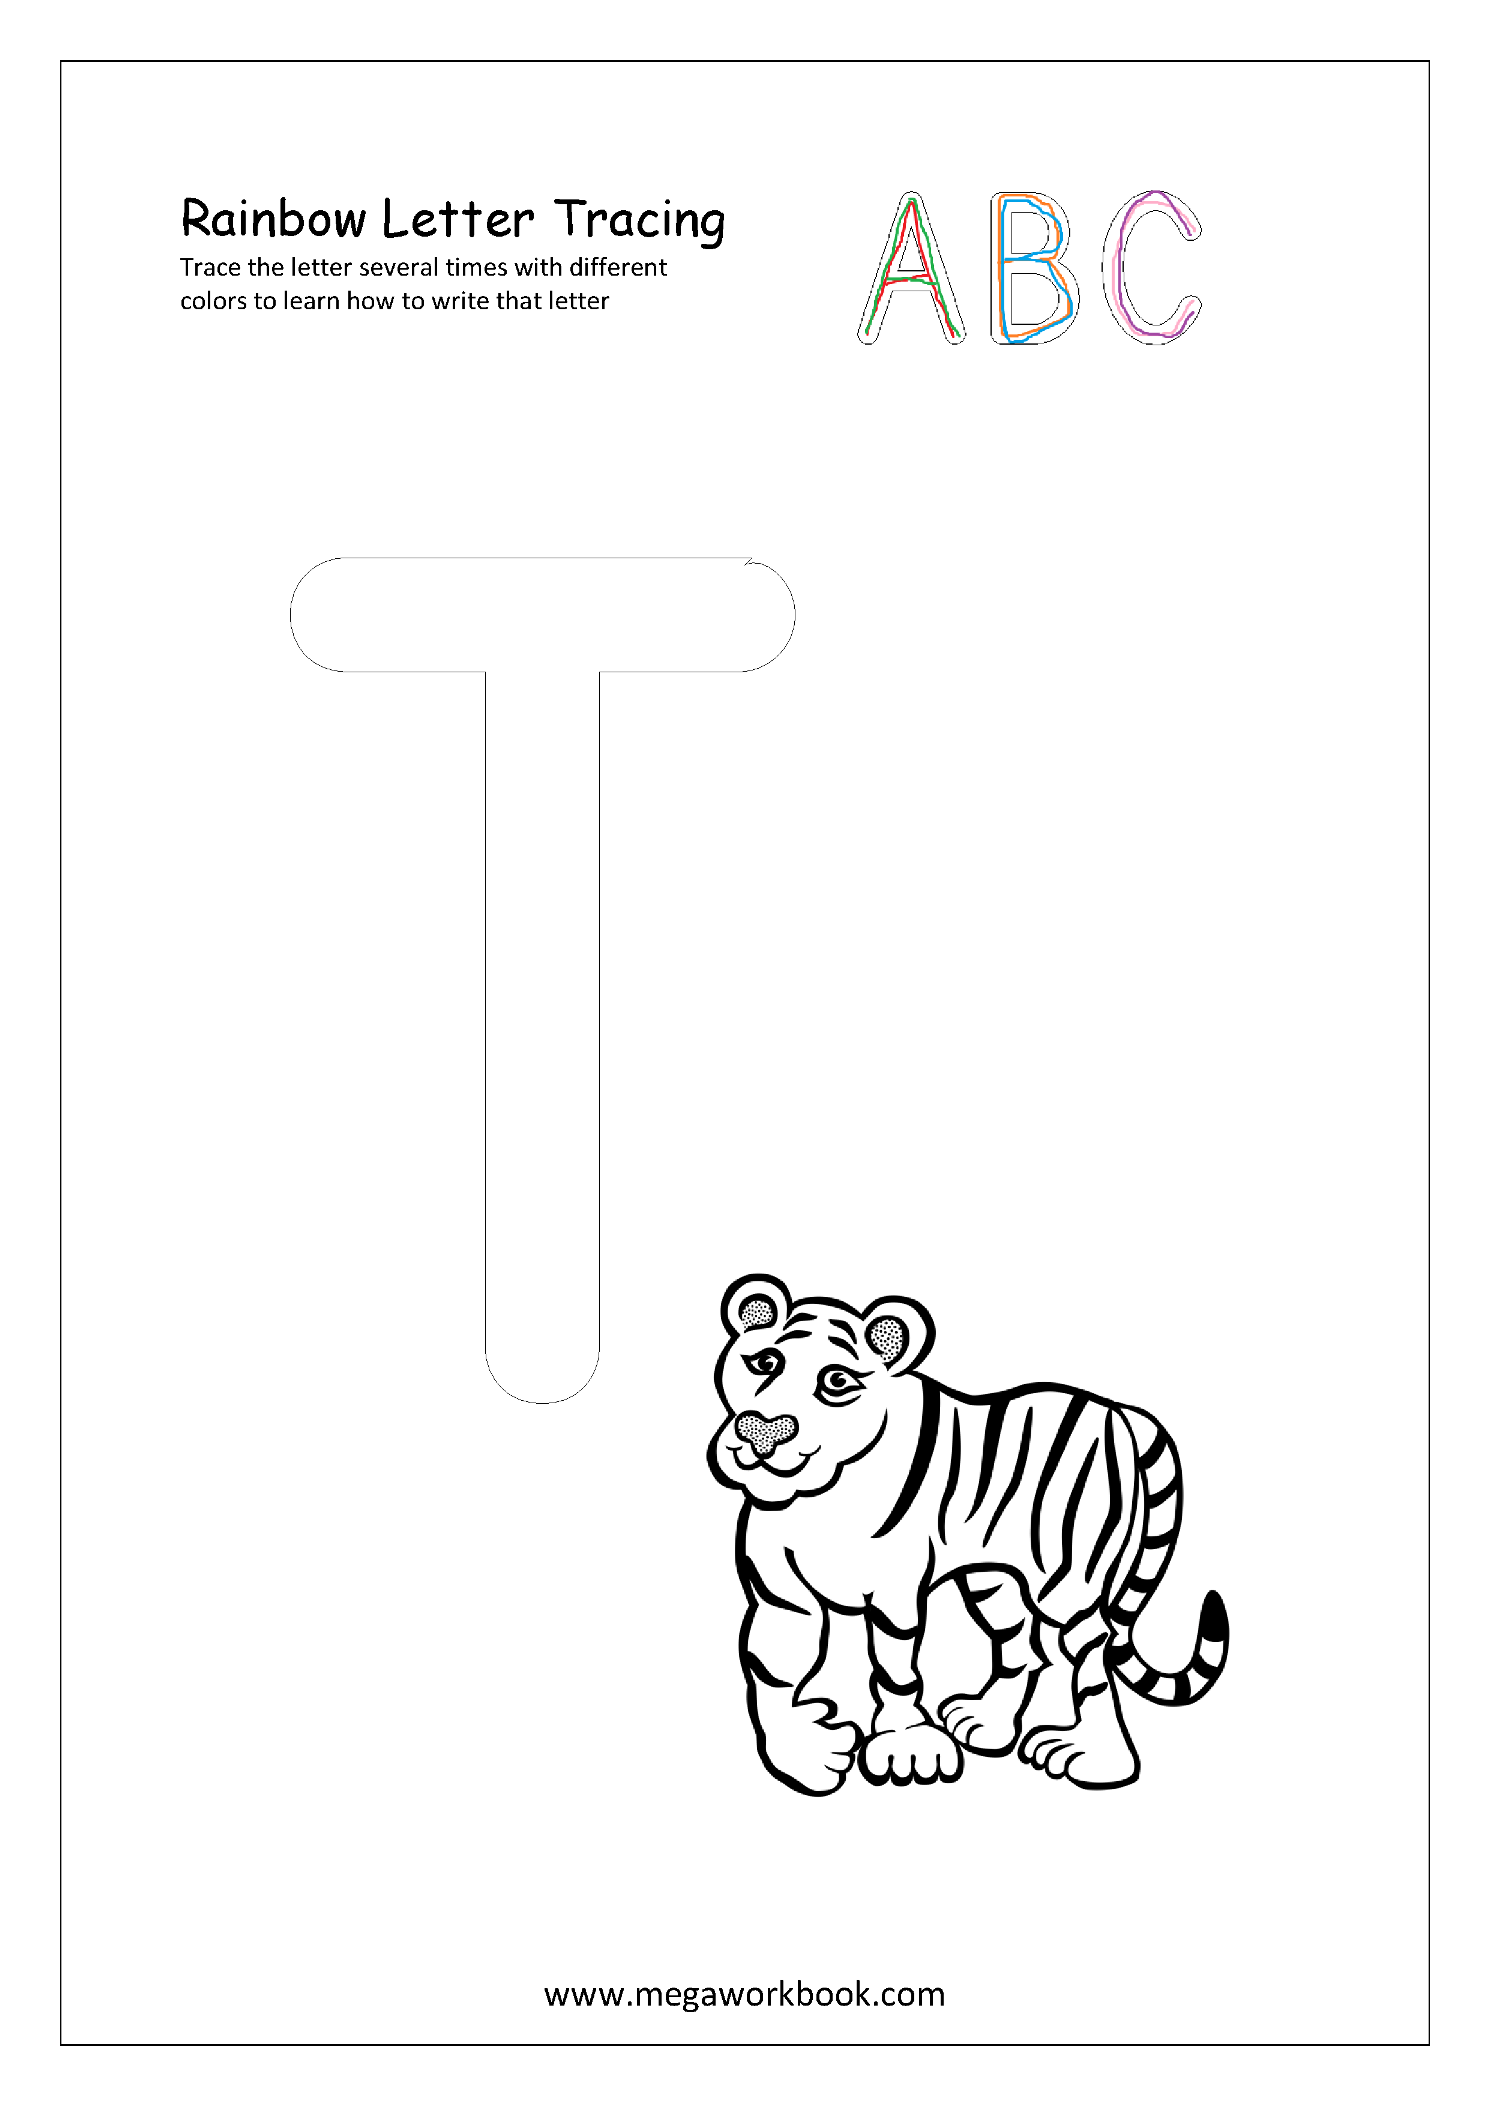 Rainbow Letter Tracing For Capital Letters Alphabet Formation Capital T Rainbow Writing Tracing Letters Alphabet Worksheets Preschool [ 2105 x 1489 Pixel ]